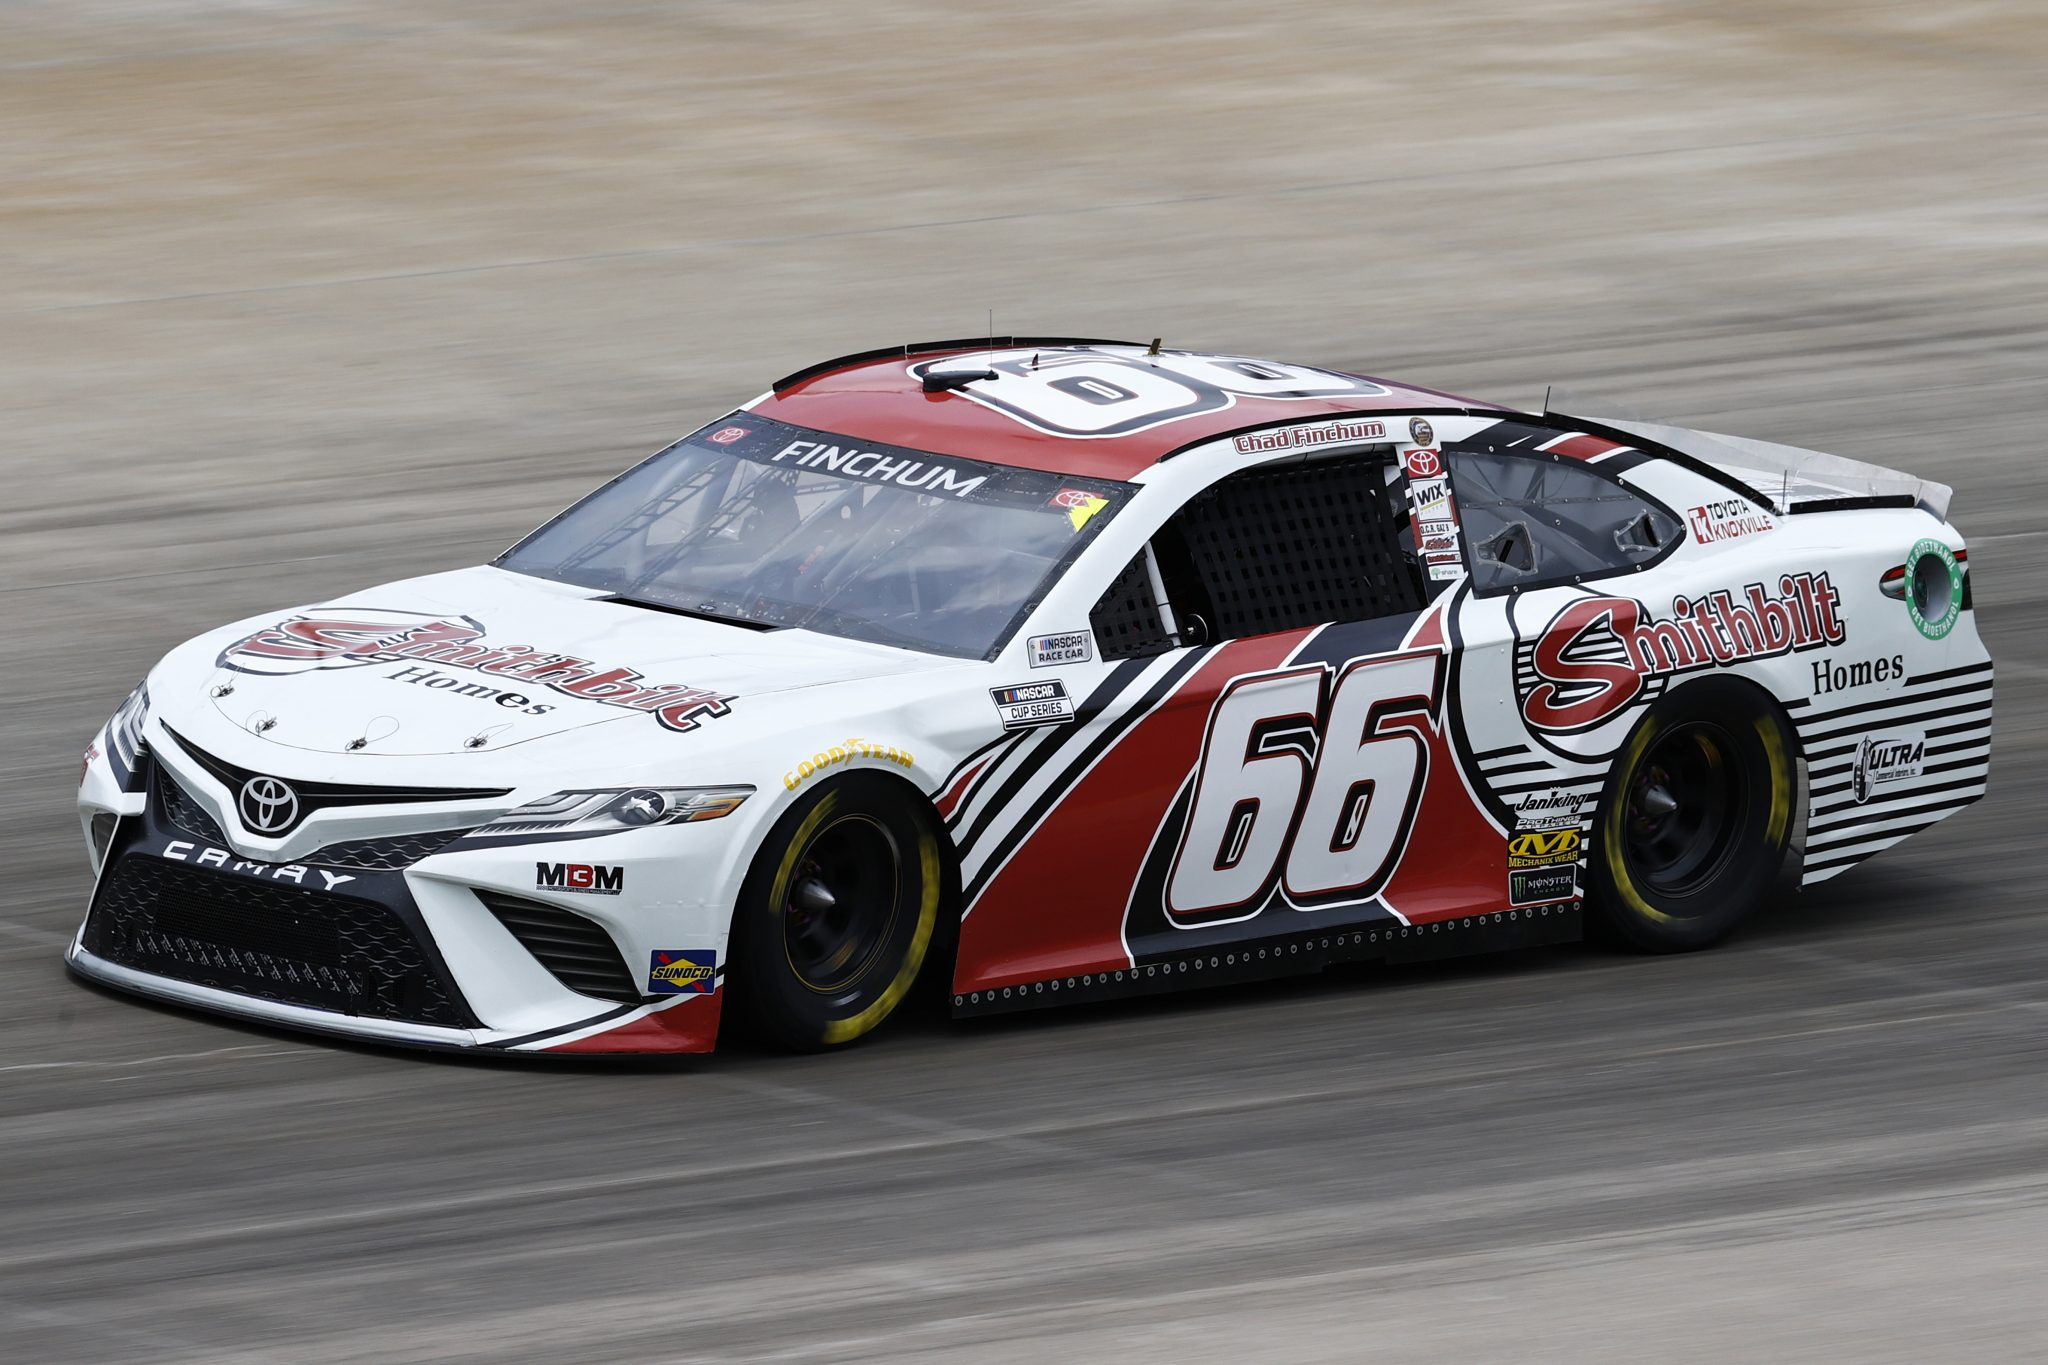 LEBANON, TENNESSEE - JUNE 19: Chad Finchum, driver of the #66 Smithbilt Homes Toyota, drives during practice for the NASCAR Cup Series Ally 400 at Nashville Superspeedway on June 19, 2021 in Lebanon, Tennessee. (Photo by Jared C. Tilton/Getty Images) | Getty Images